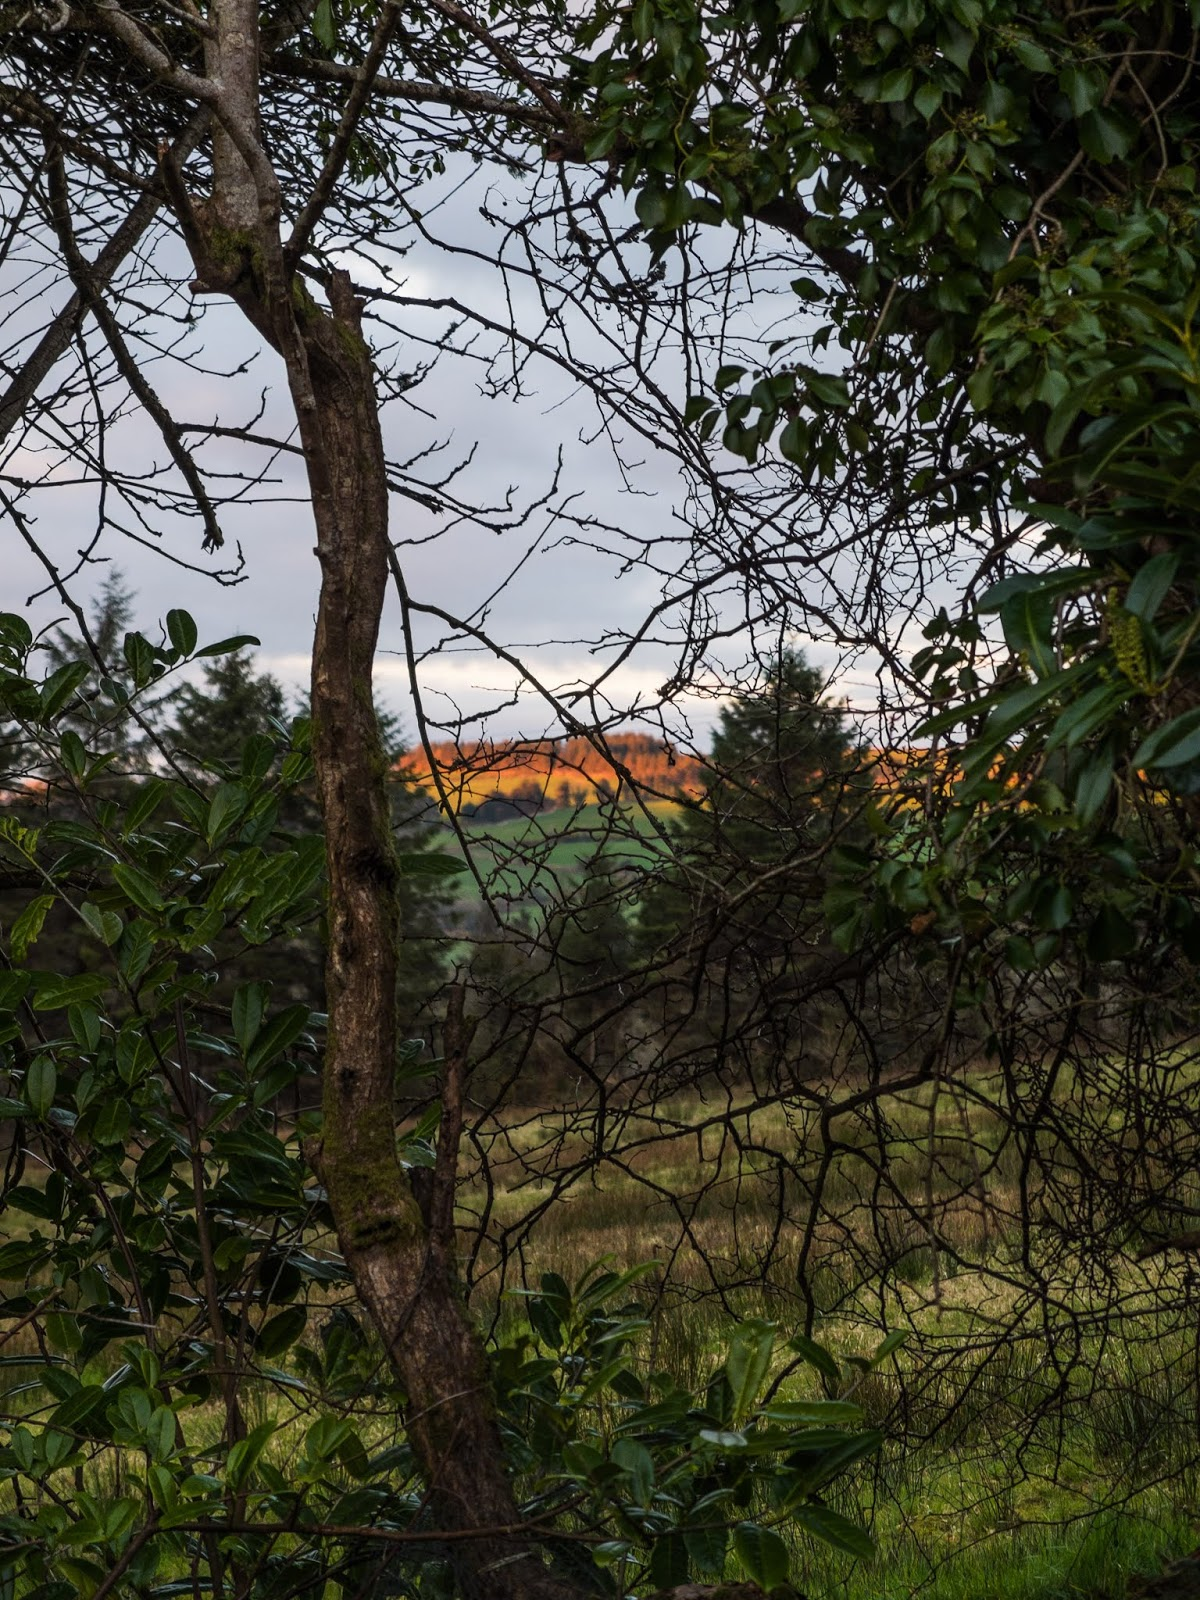 Sun setting on distant mountain tops through a tree hedge.